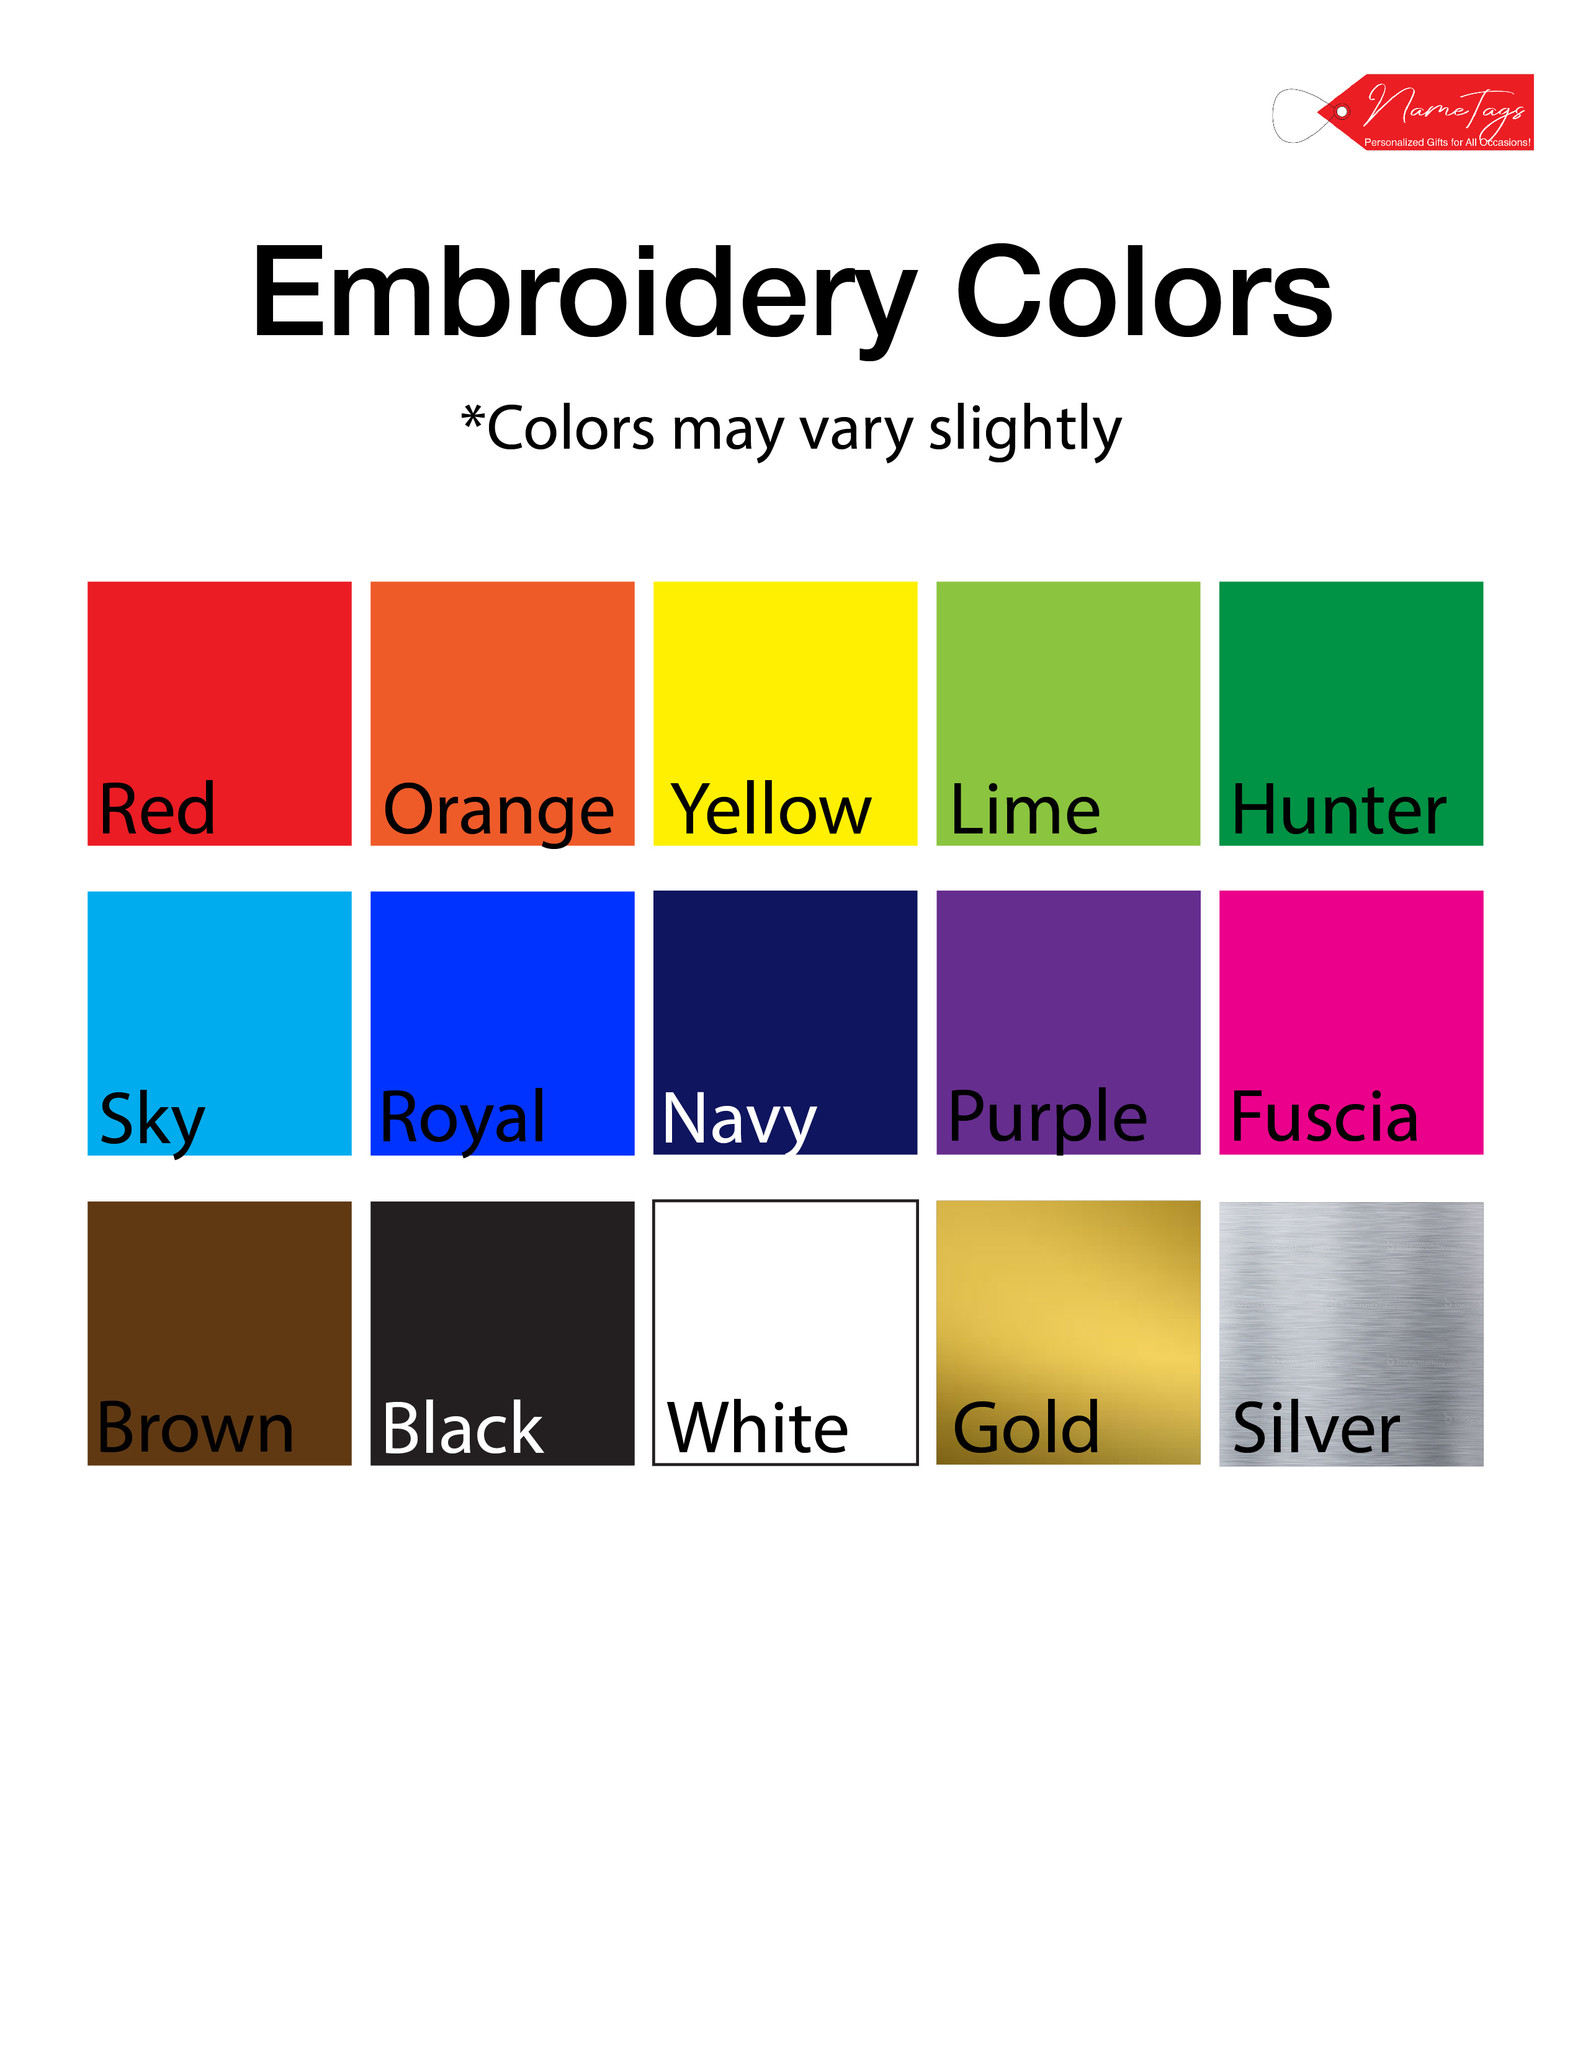 Embroidery Colors